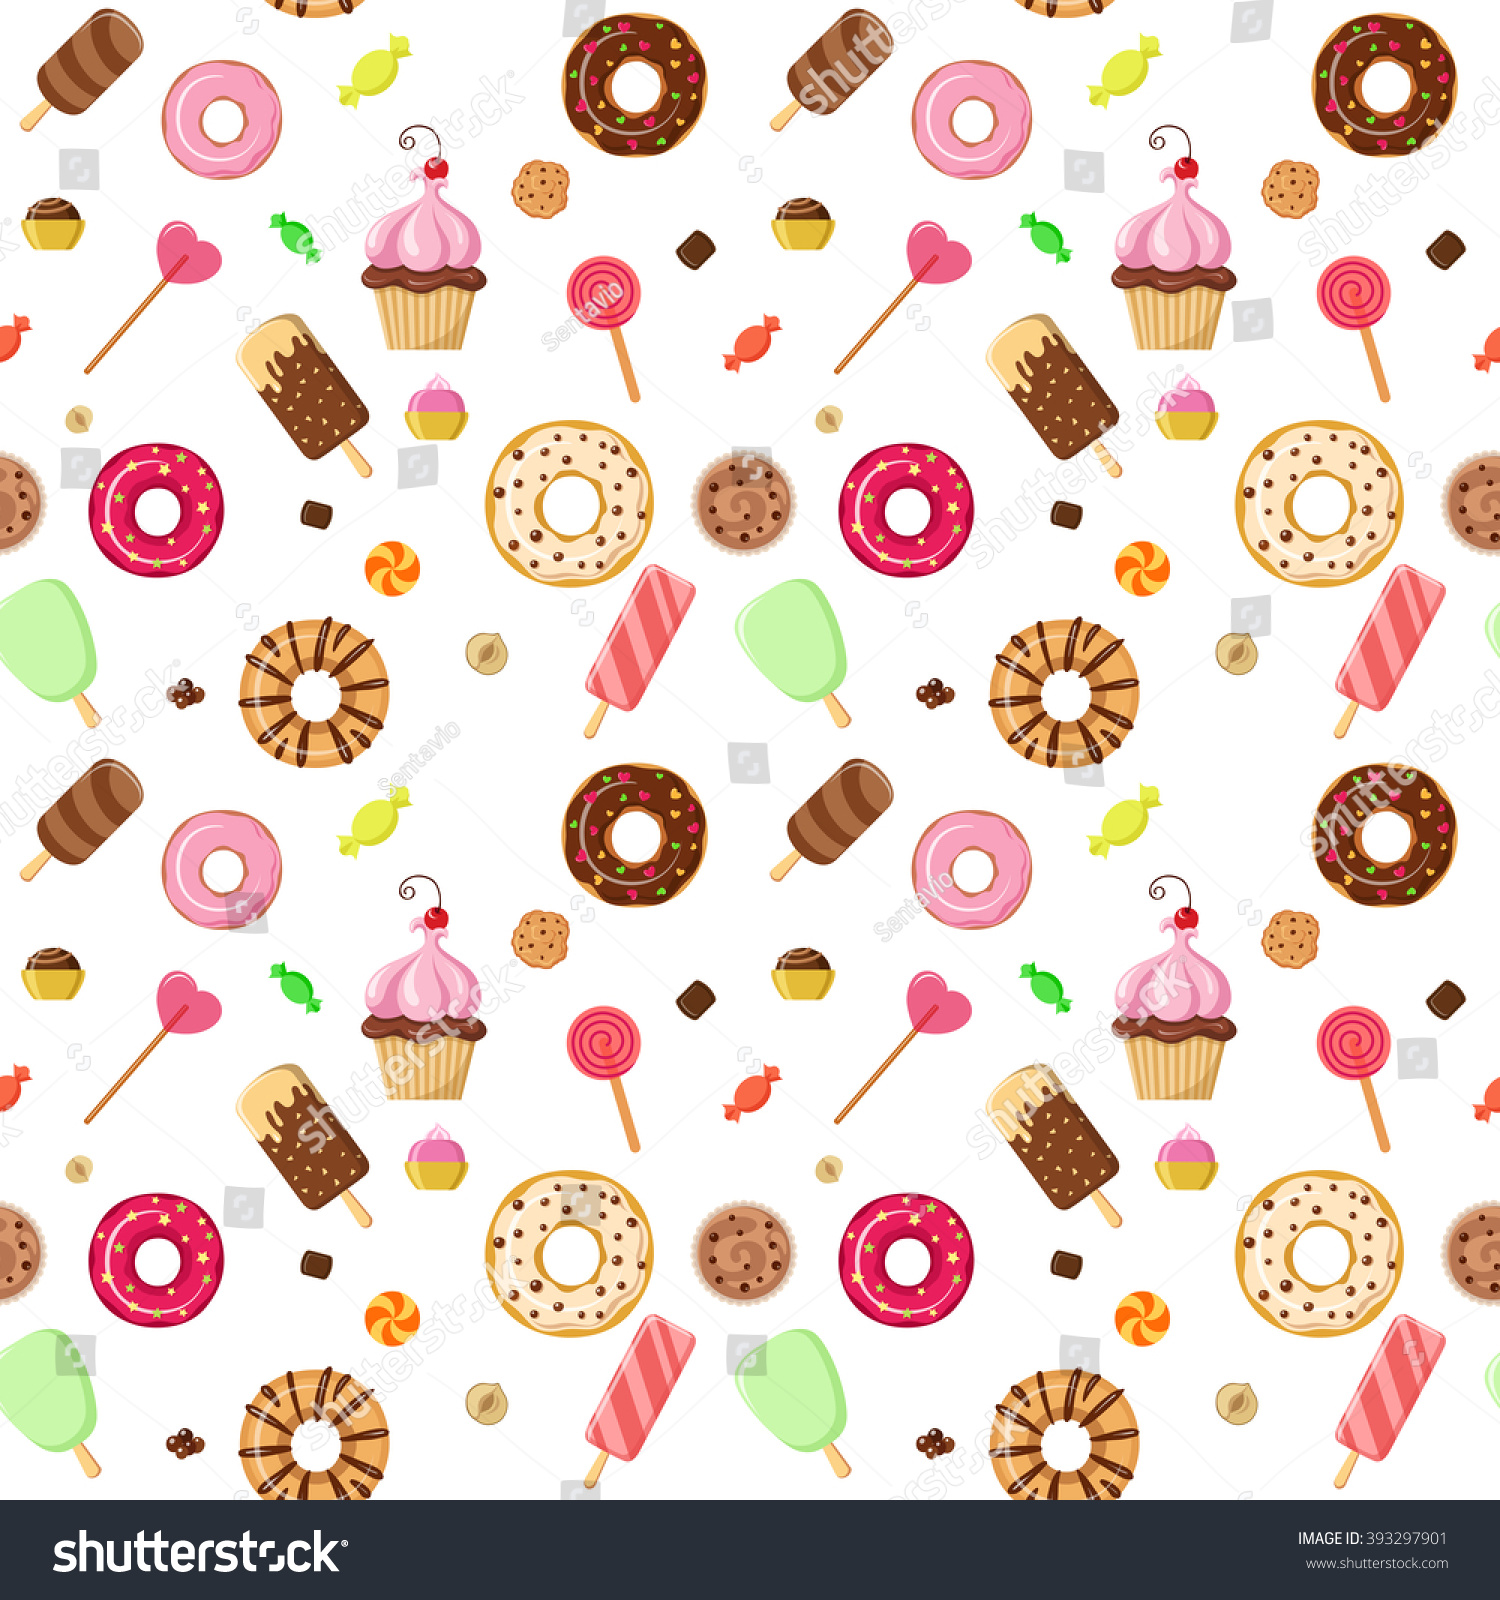 Sweet Ice Cream Flat Colorful Seamless Pattern Vector: Ice Cream Sweet Dessert Donut Cookie Stock Vector